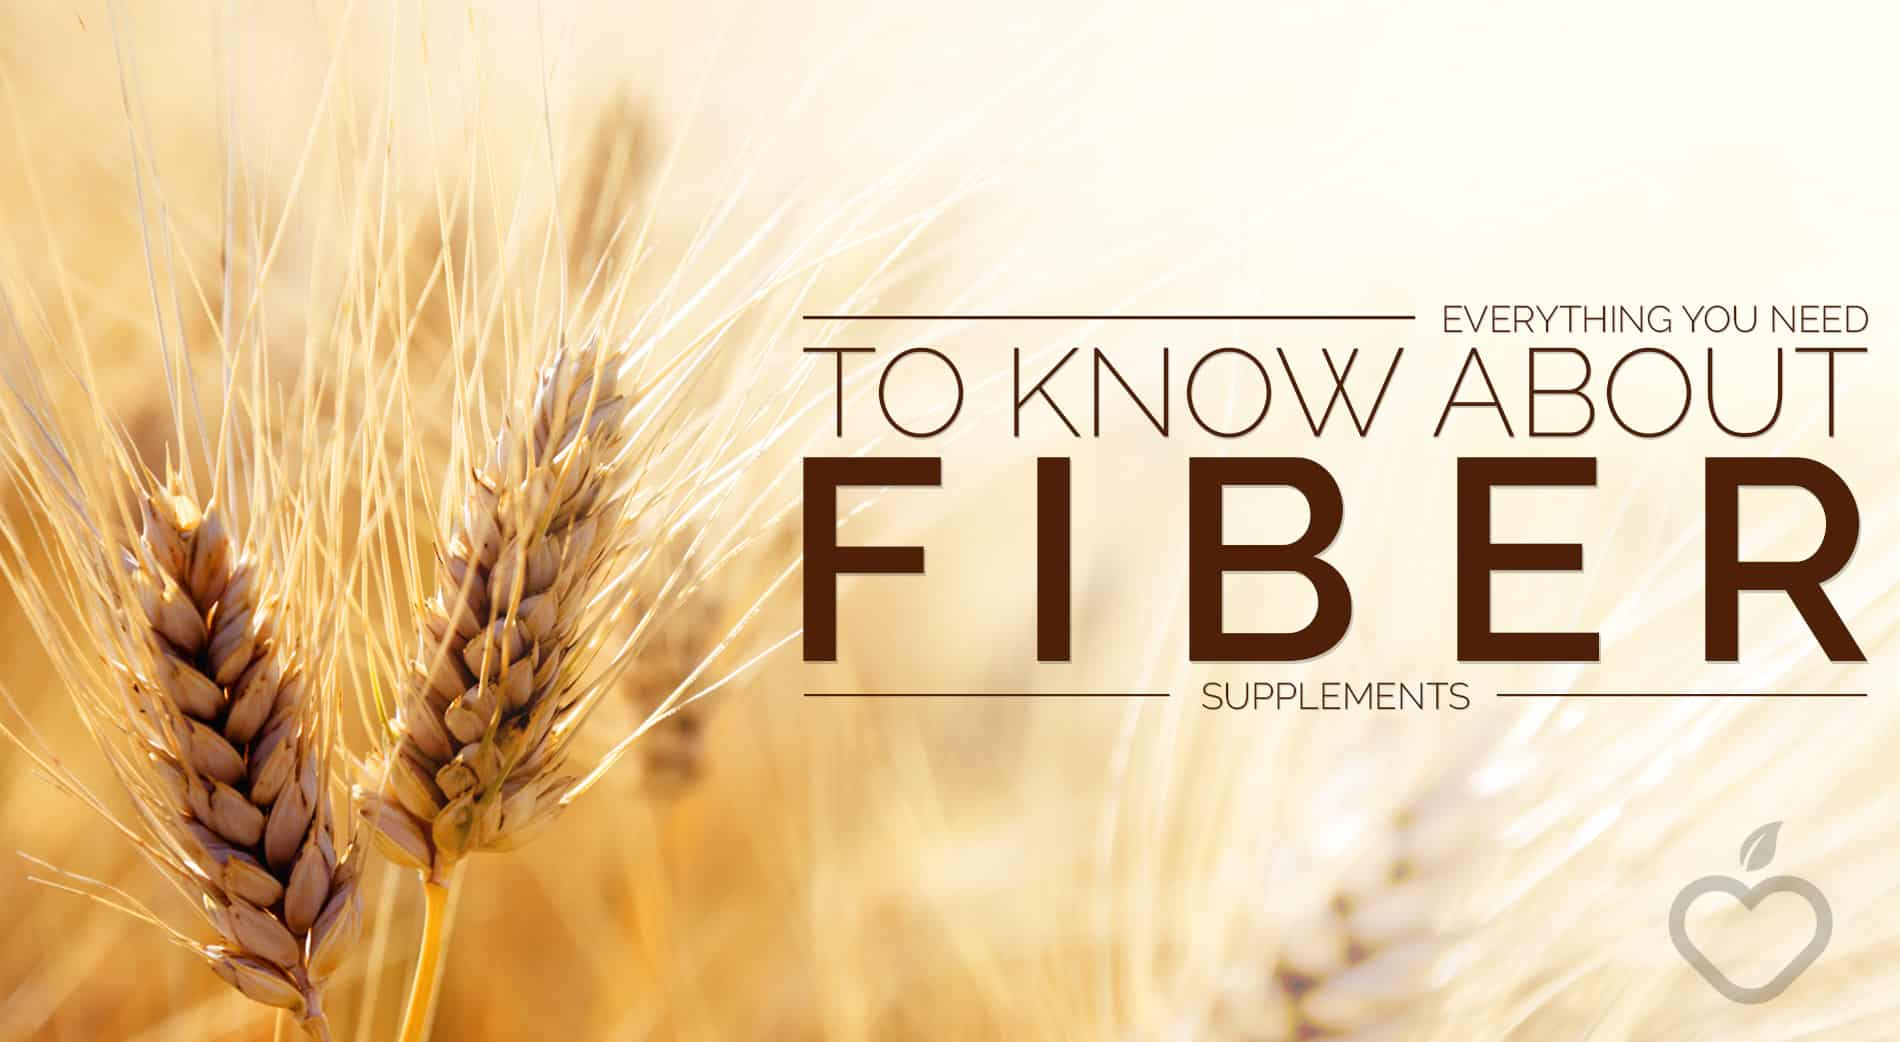 Fiber Supplements Image Design 1 - Everything You Need To Know About Fiber Supplements